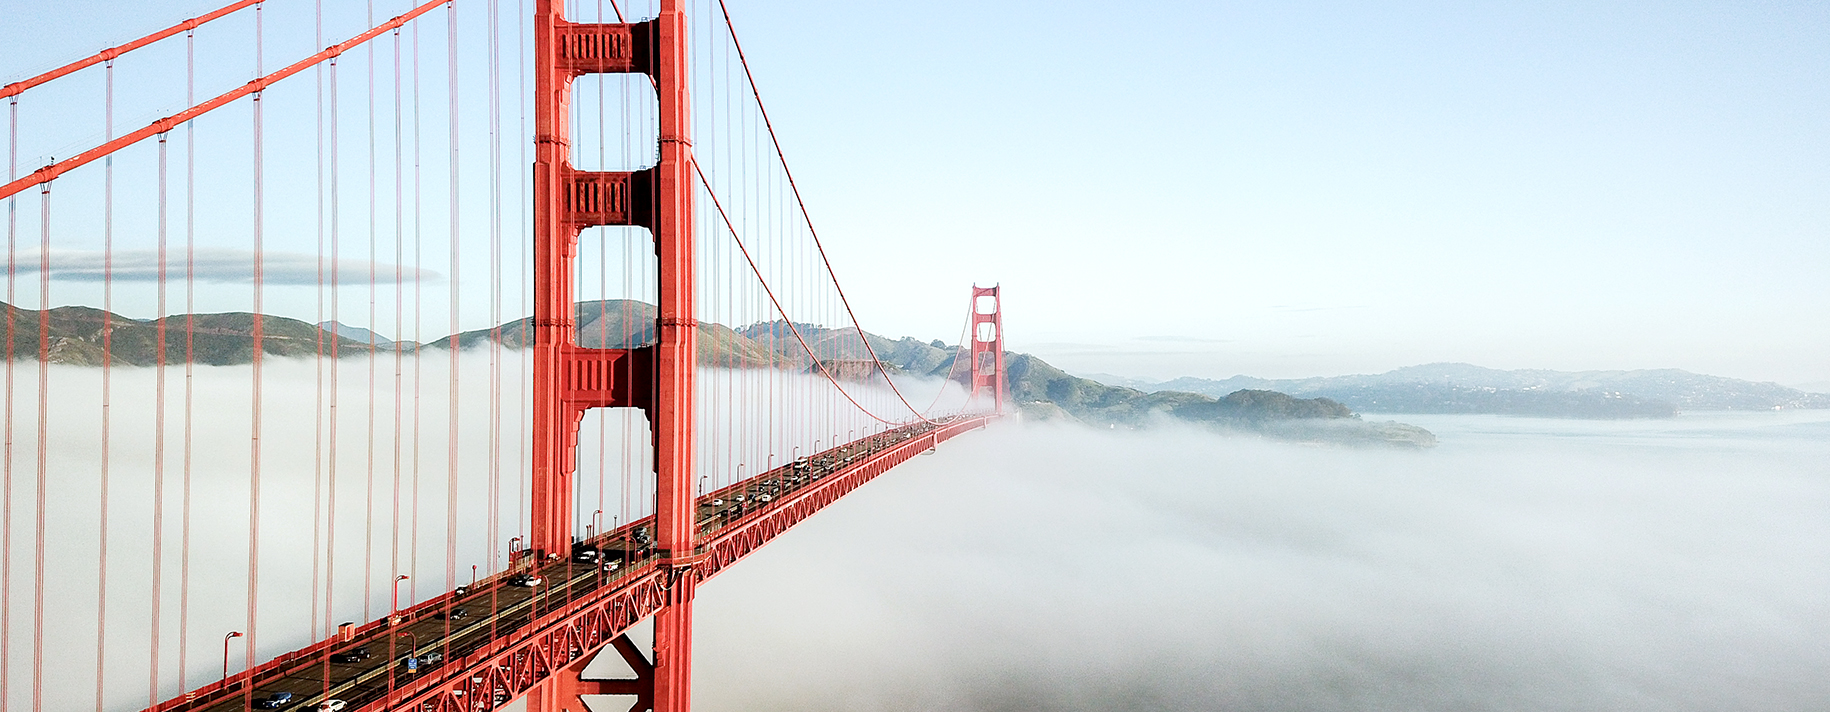 Golden gate bridge with fog underneath it in San Francisco, California.